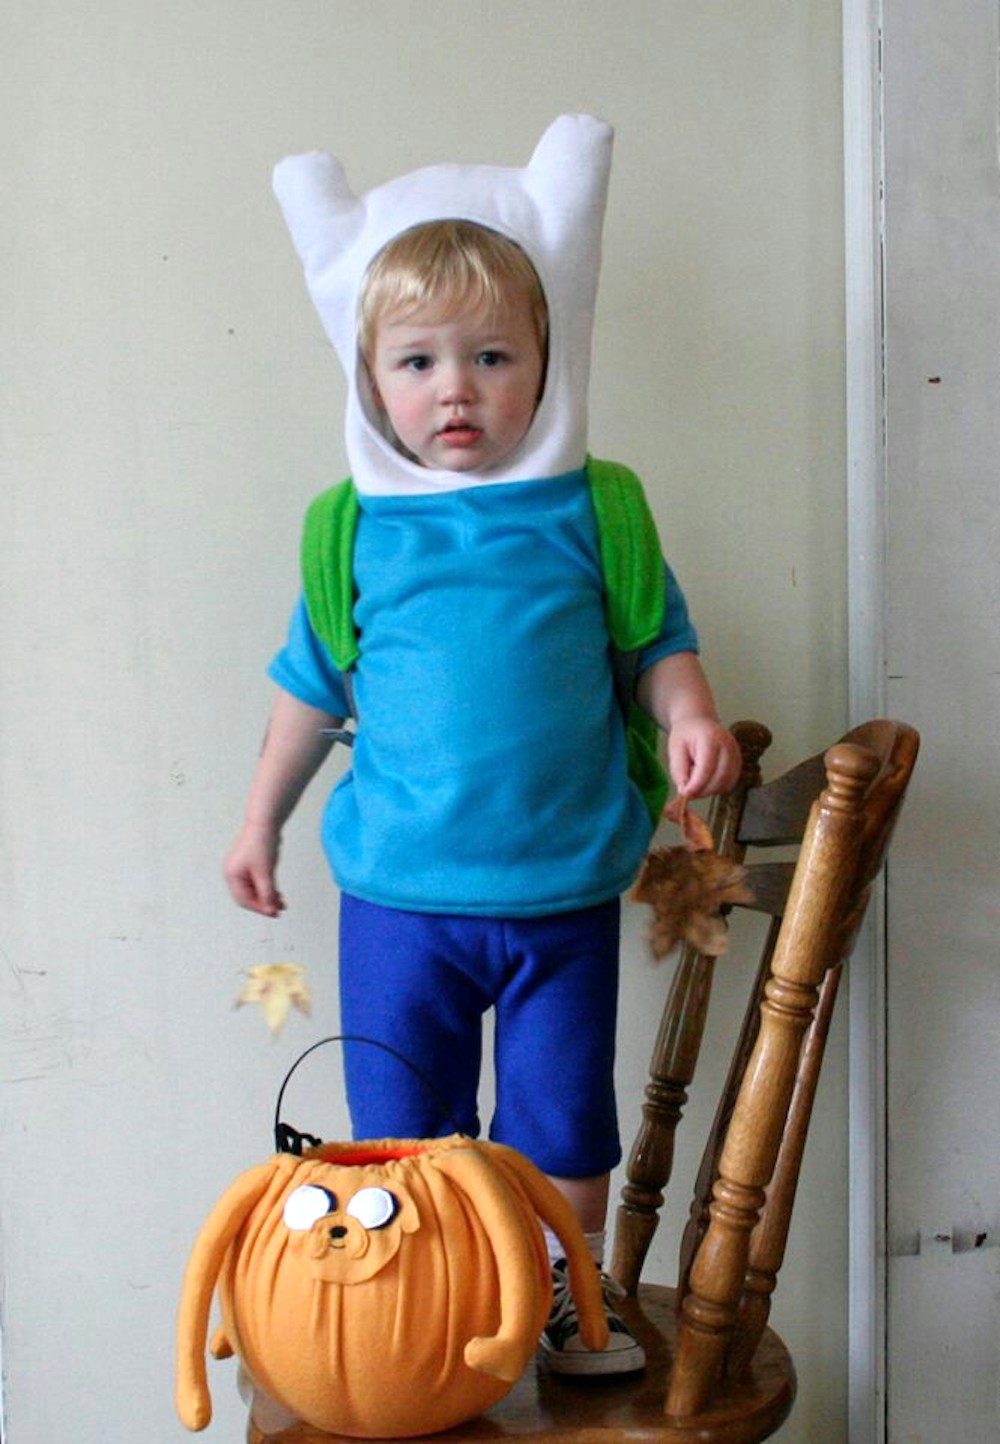 Geeky Halloween costumes for kids: Finn the Human from Adventure Time